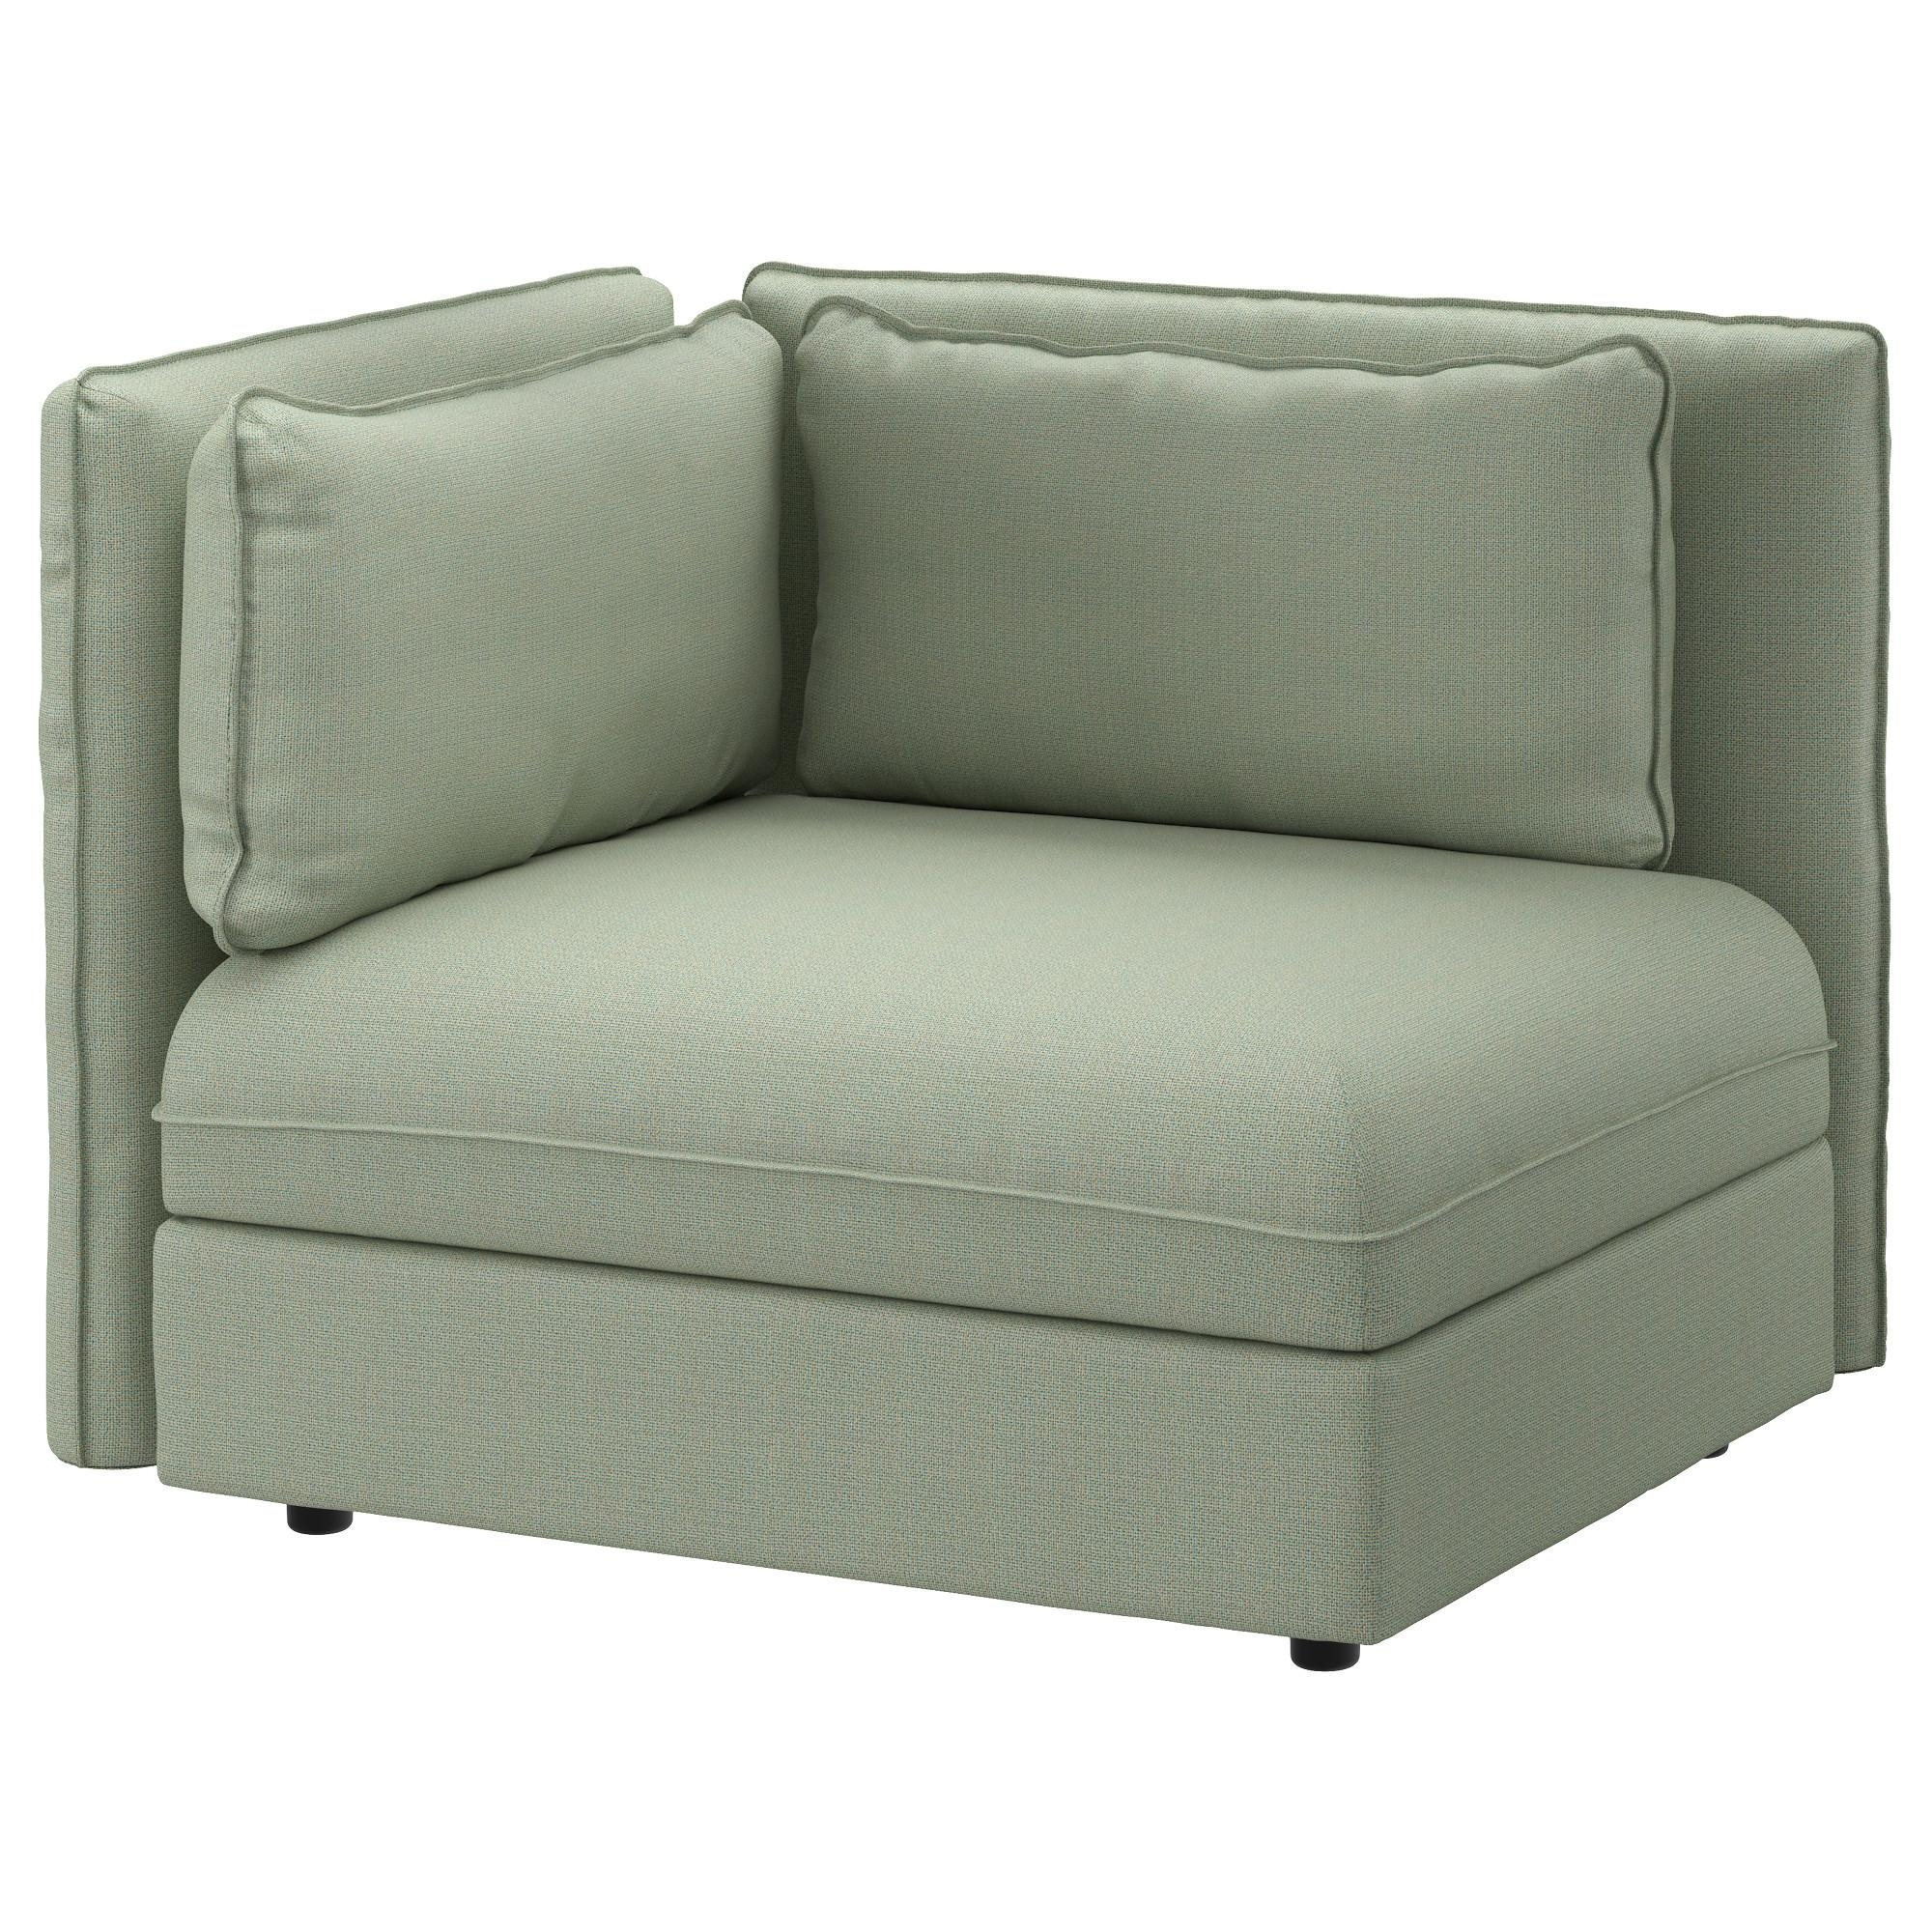 Sectional Sofas & Couches – Ikea With Regard To Ikea Sleeper Sofa Sectional (Image 13 of 20)